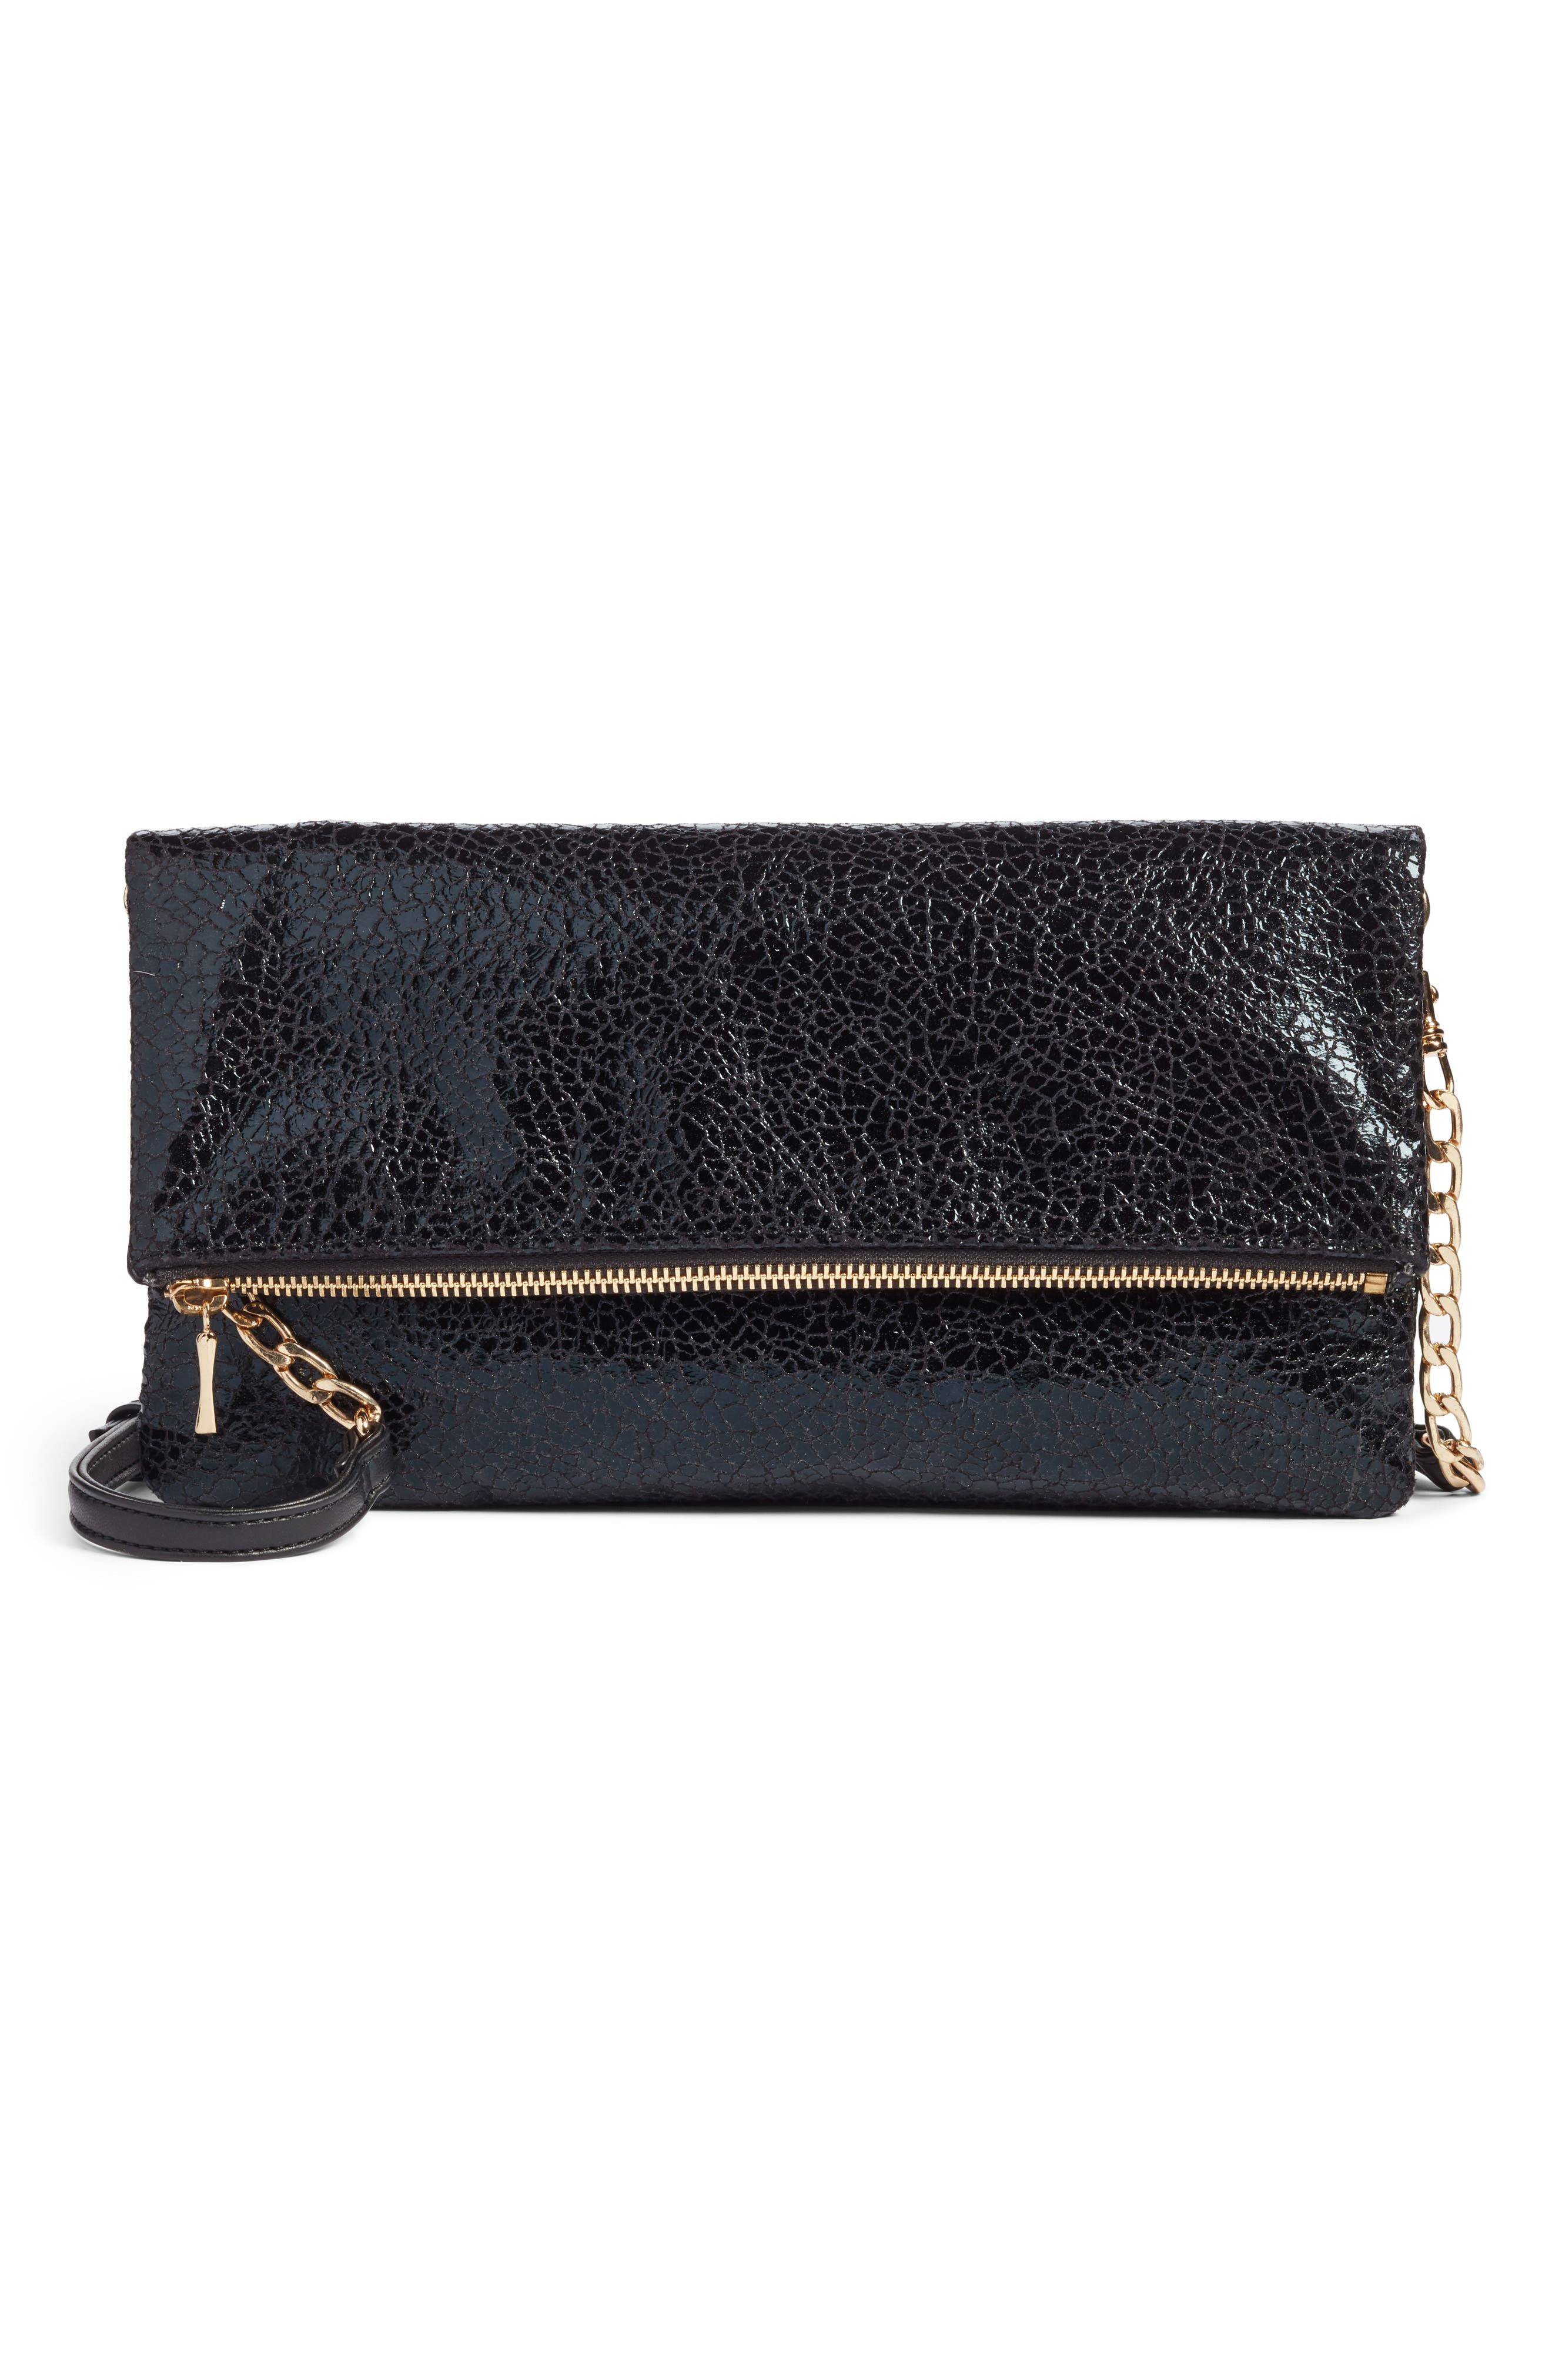 Sole Society Black Crackle Faux Leather Foldover Clutch